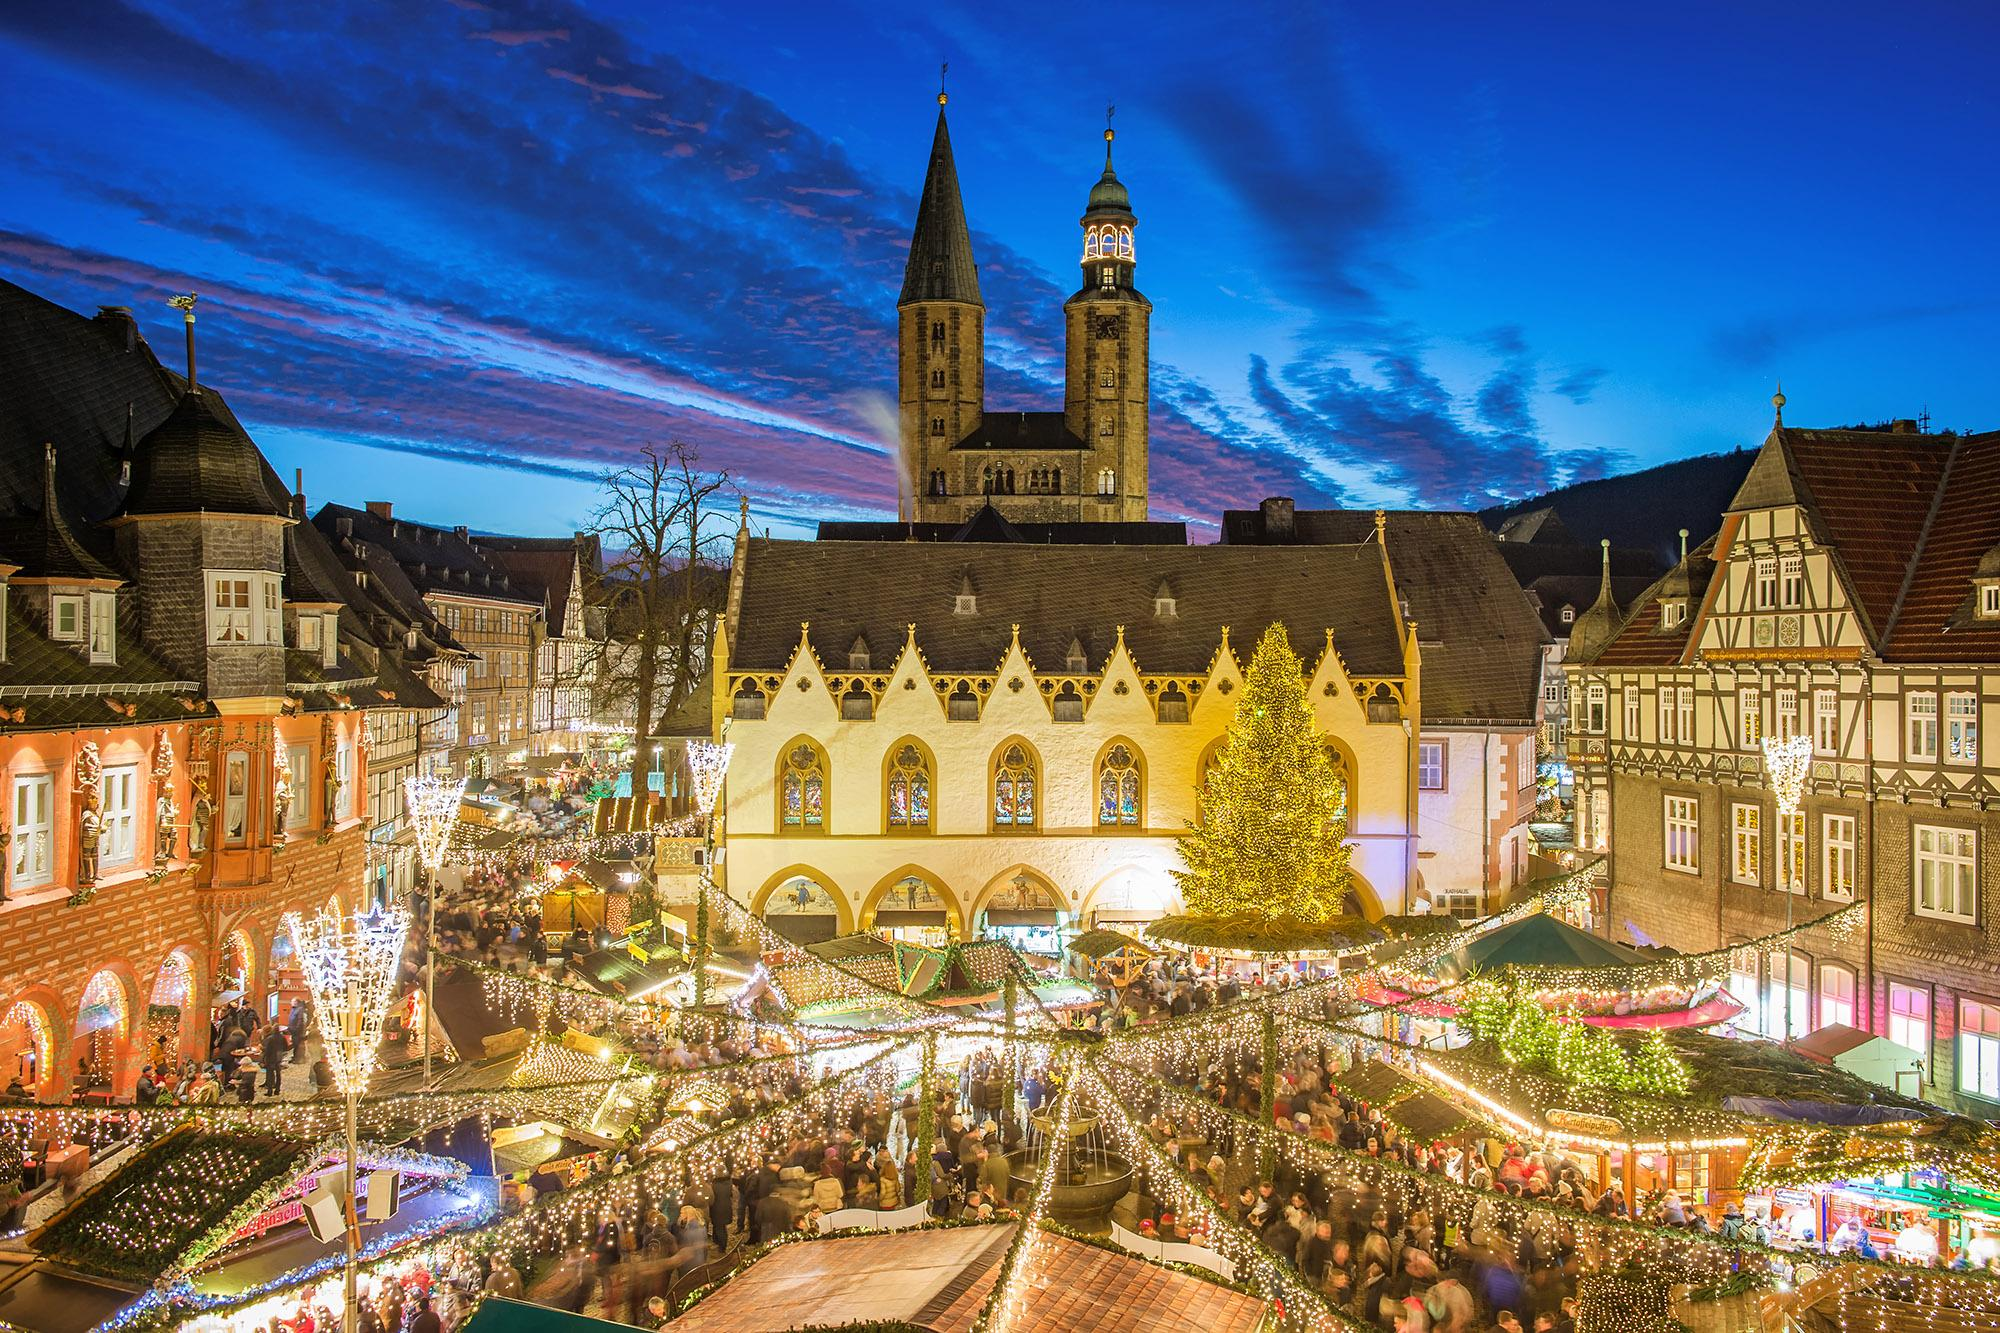 More than 80 cabins with art, handicrafts, and Christmas specialities wait to be discovered. – © Stefan Schiefer / GOSLAR marketing gmbh